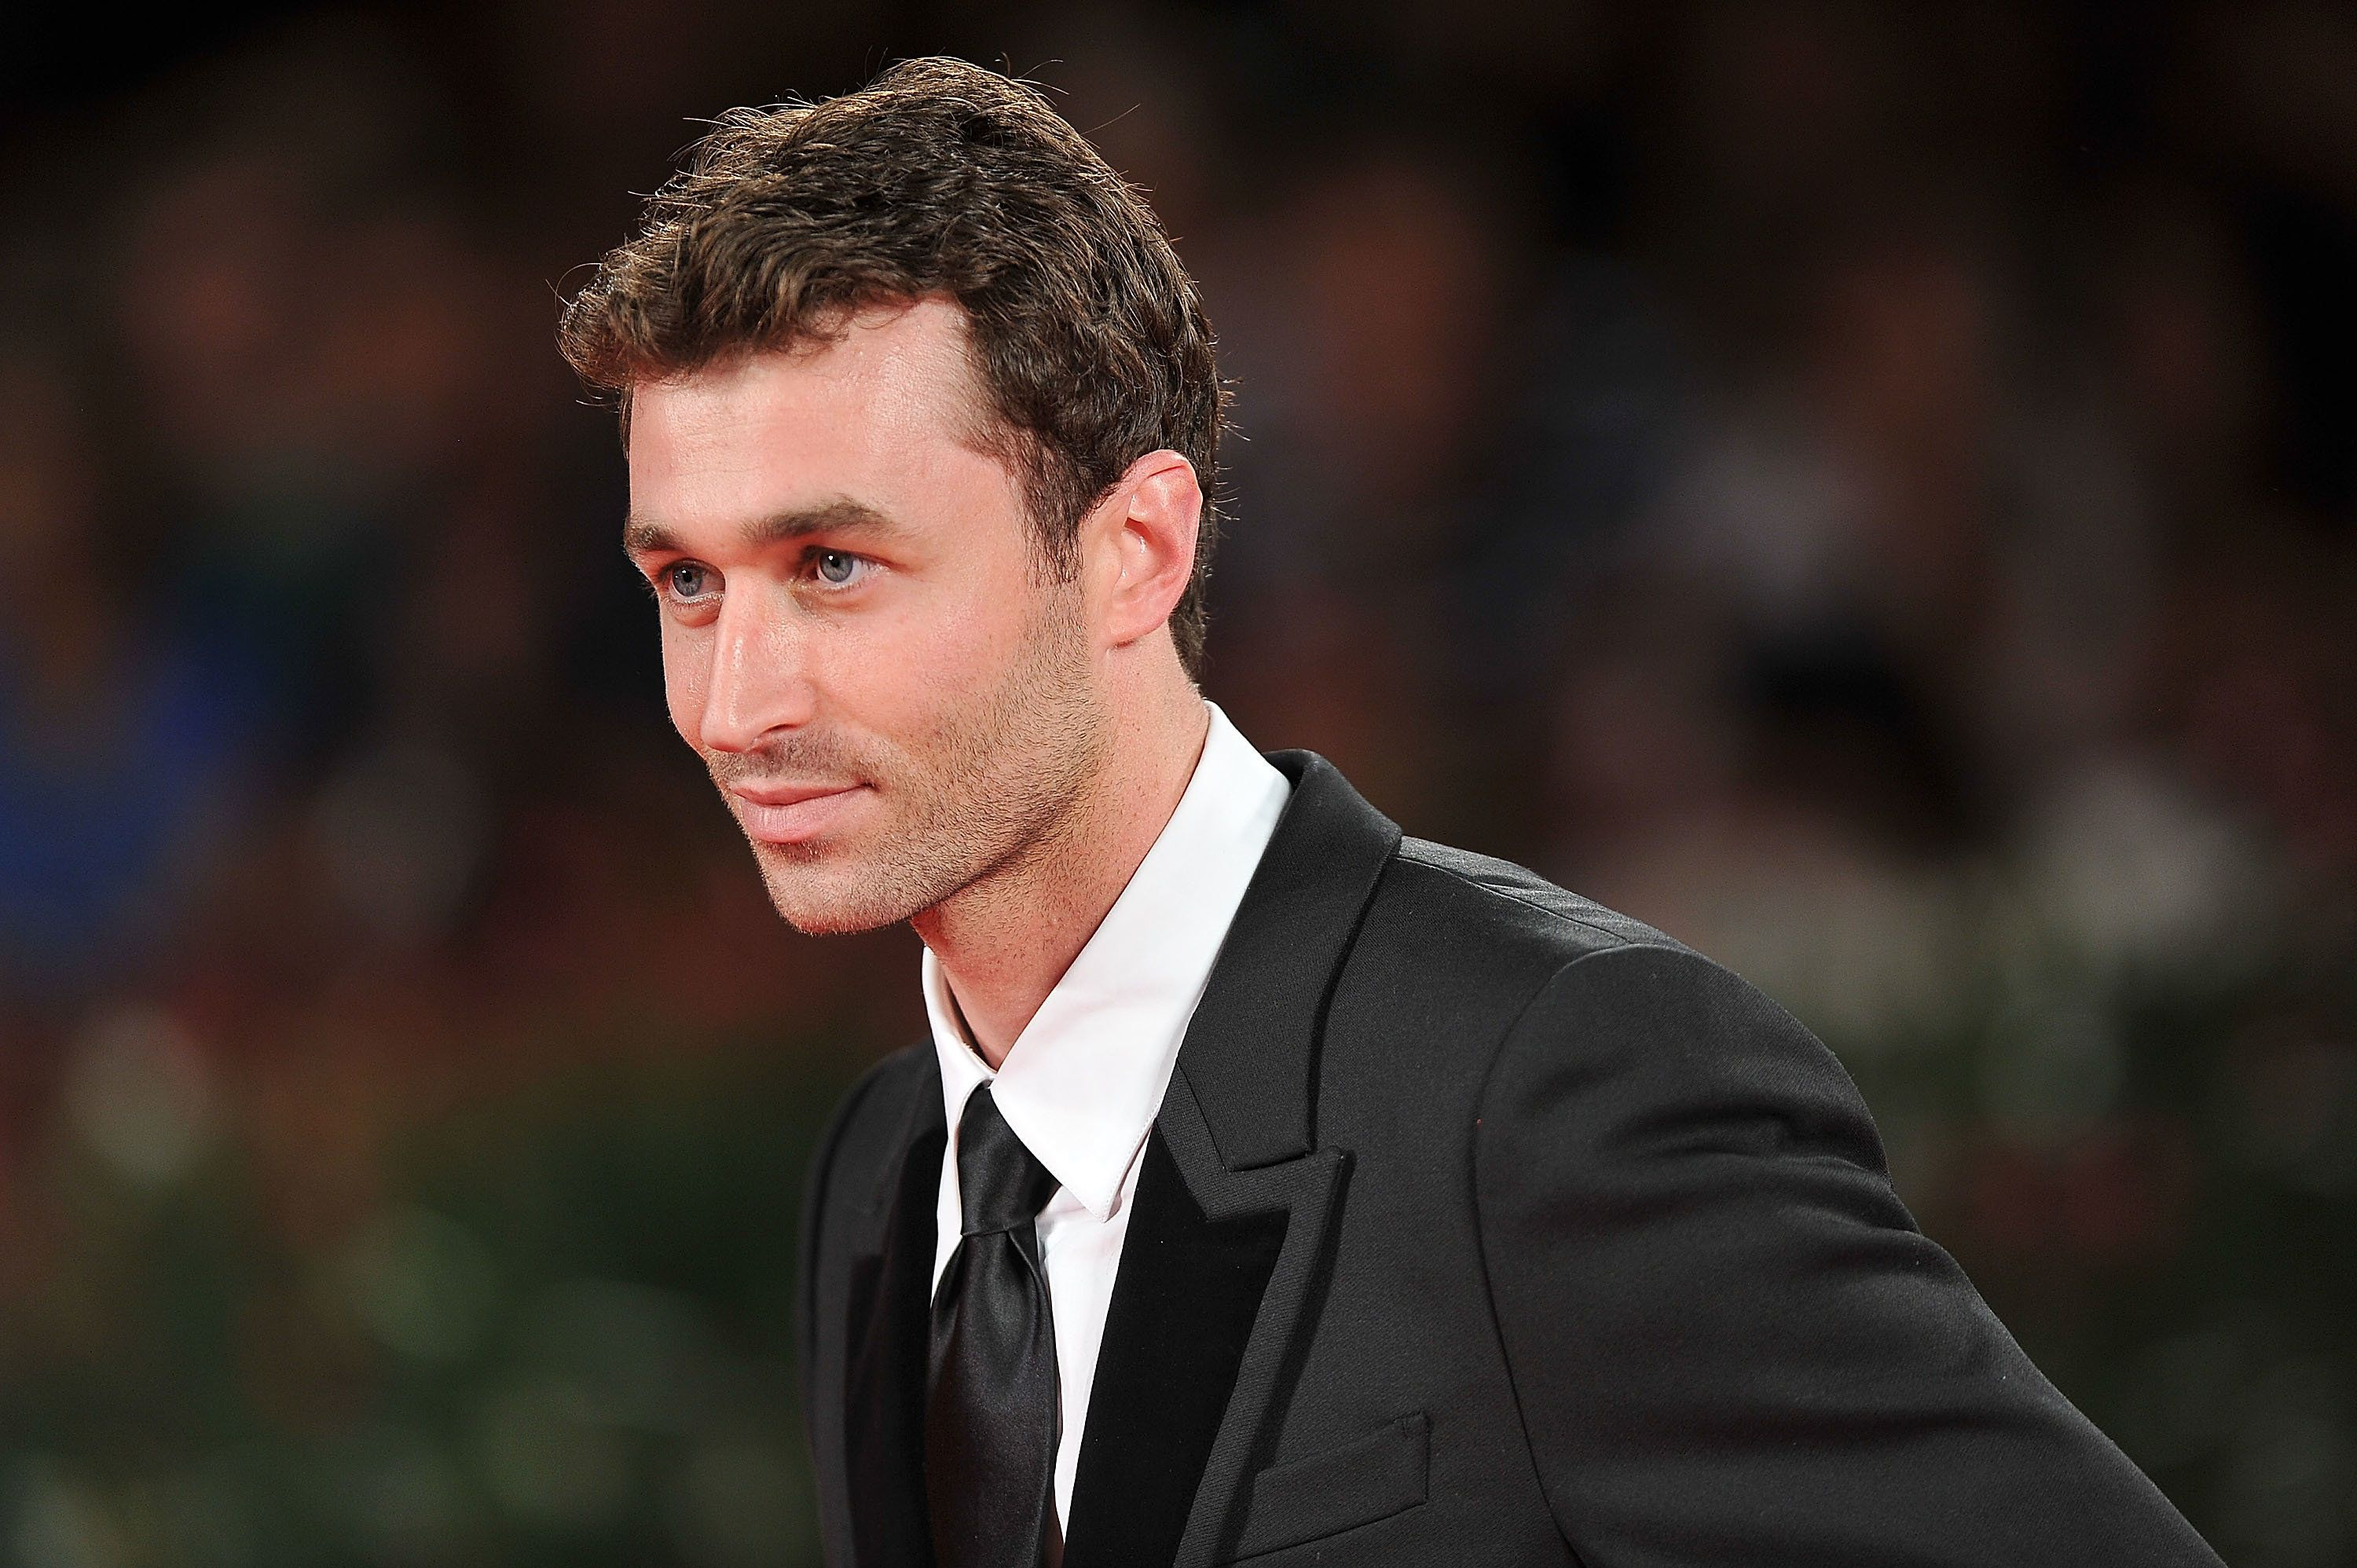 VENICE, ITALY - AUGUST 30:  James Deen attends 'The Canyons' Premiere during The 70th Venice International Film Festival at Palazzo Del Cinema on August 30, 2013 in Venice, Italy.  (Photo by Stefania D'Alessandro/WireImage)